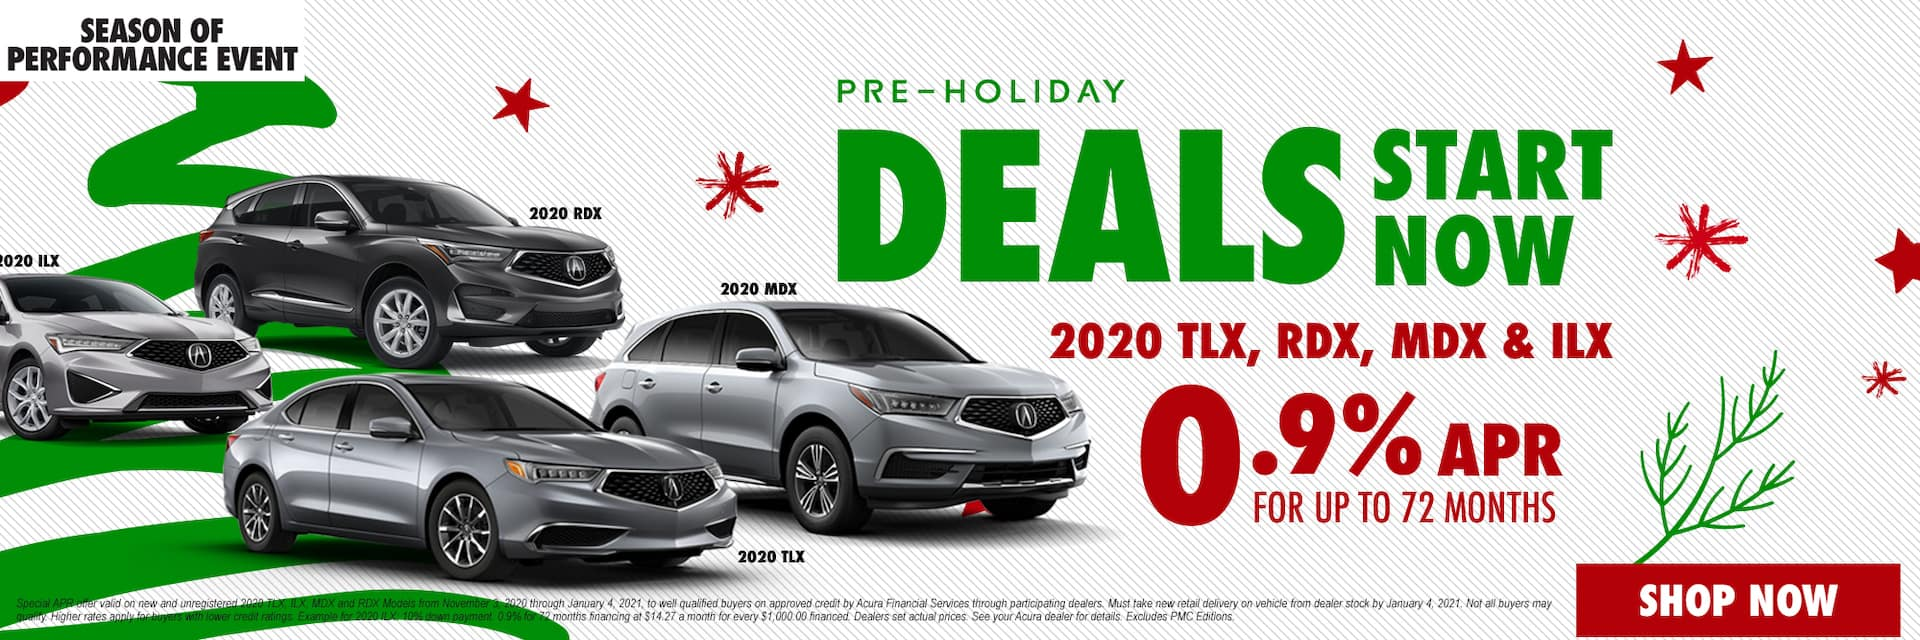 Acura multi-models holiday deals